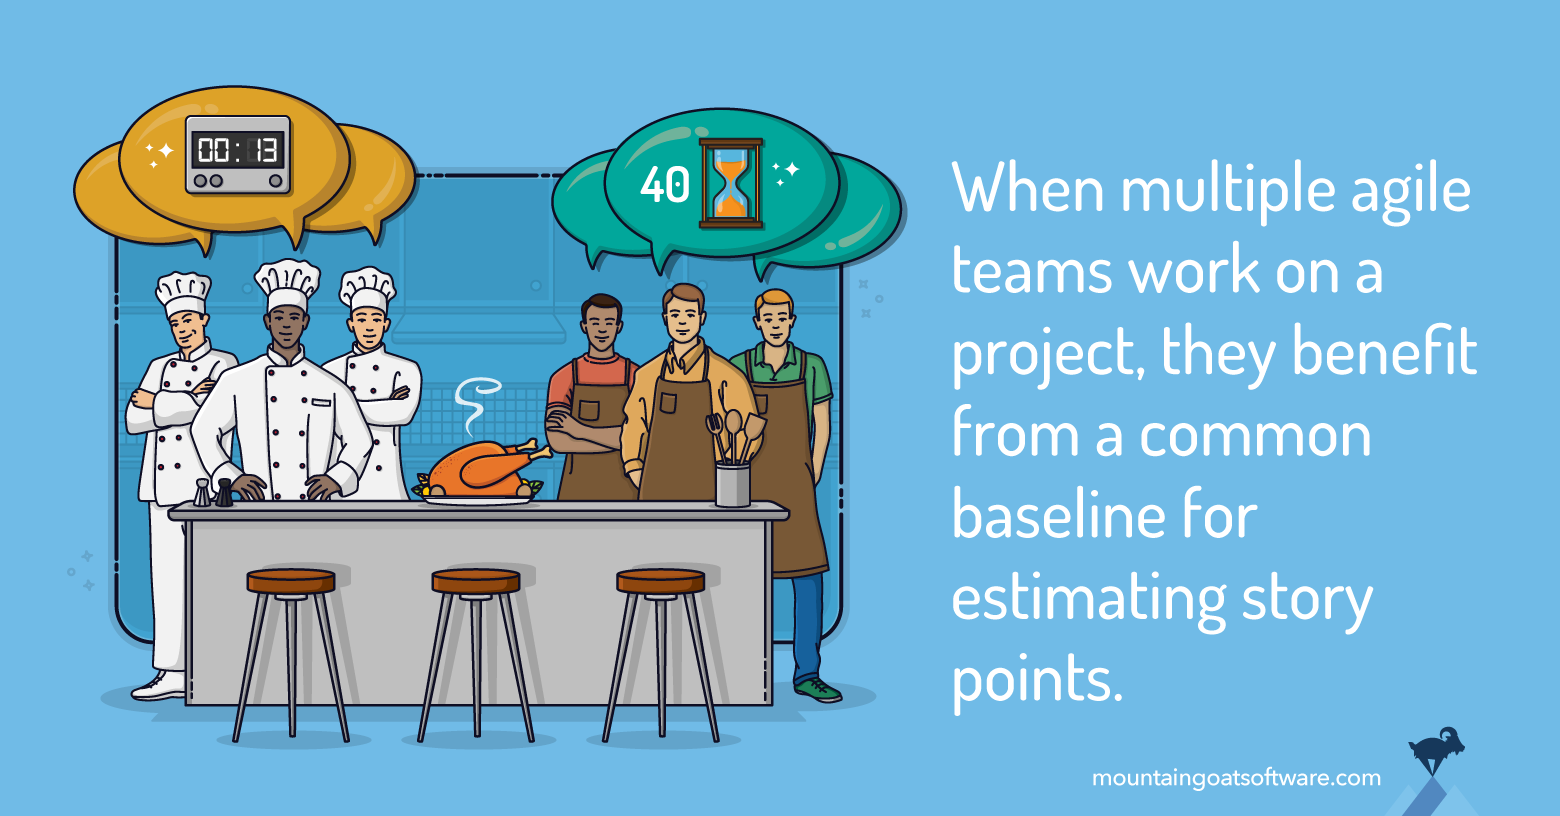 How to Estimate Story Points With Multiple Teams